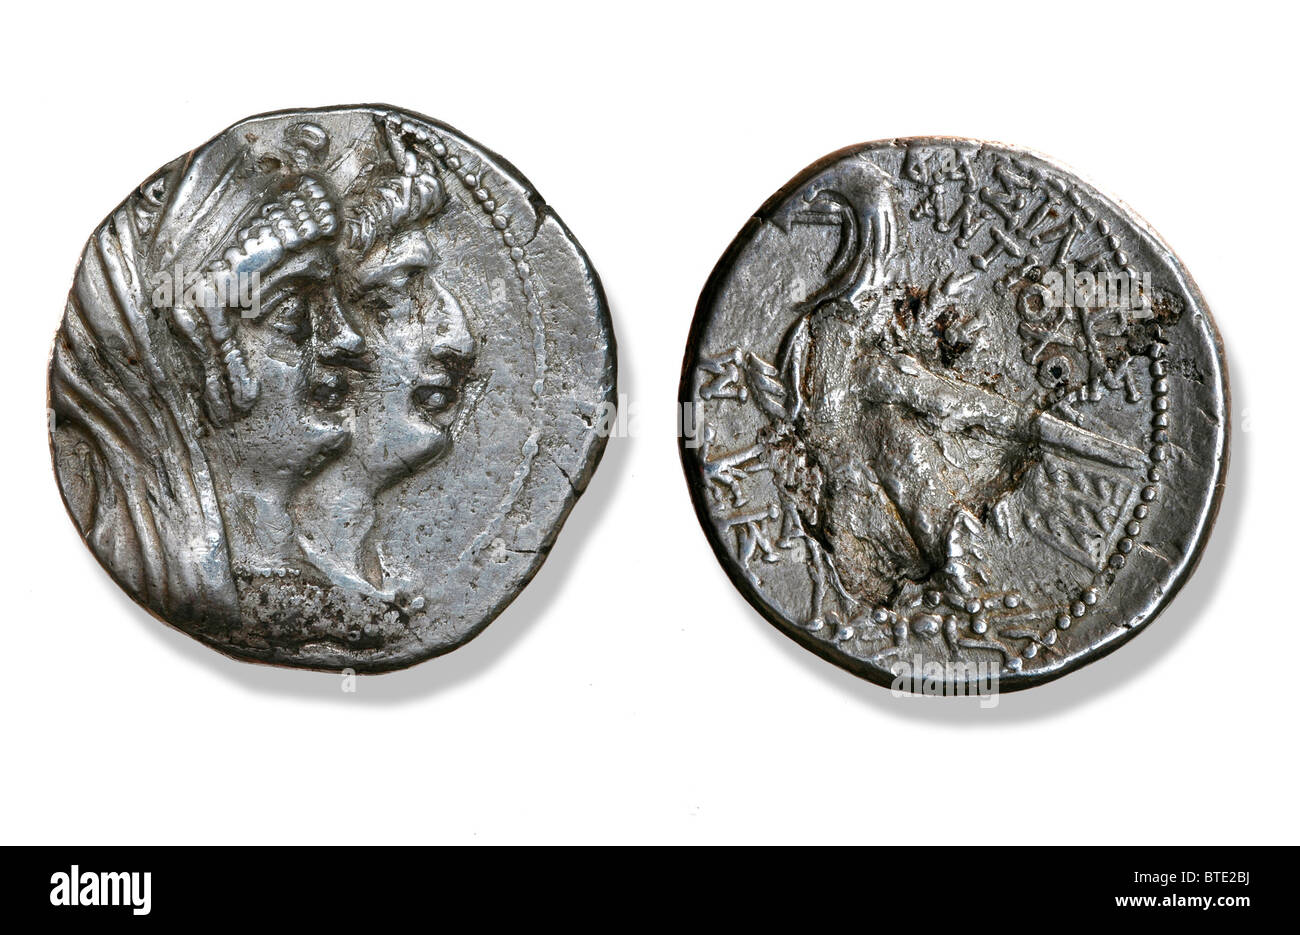 5404. Coin depicting Cleopatra Thea and Antiochus VII Grypus, 125 - 121 BC - Stock Image